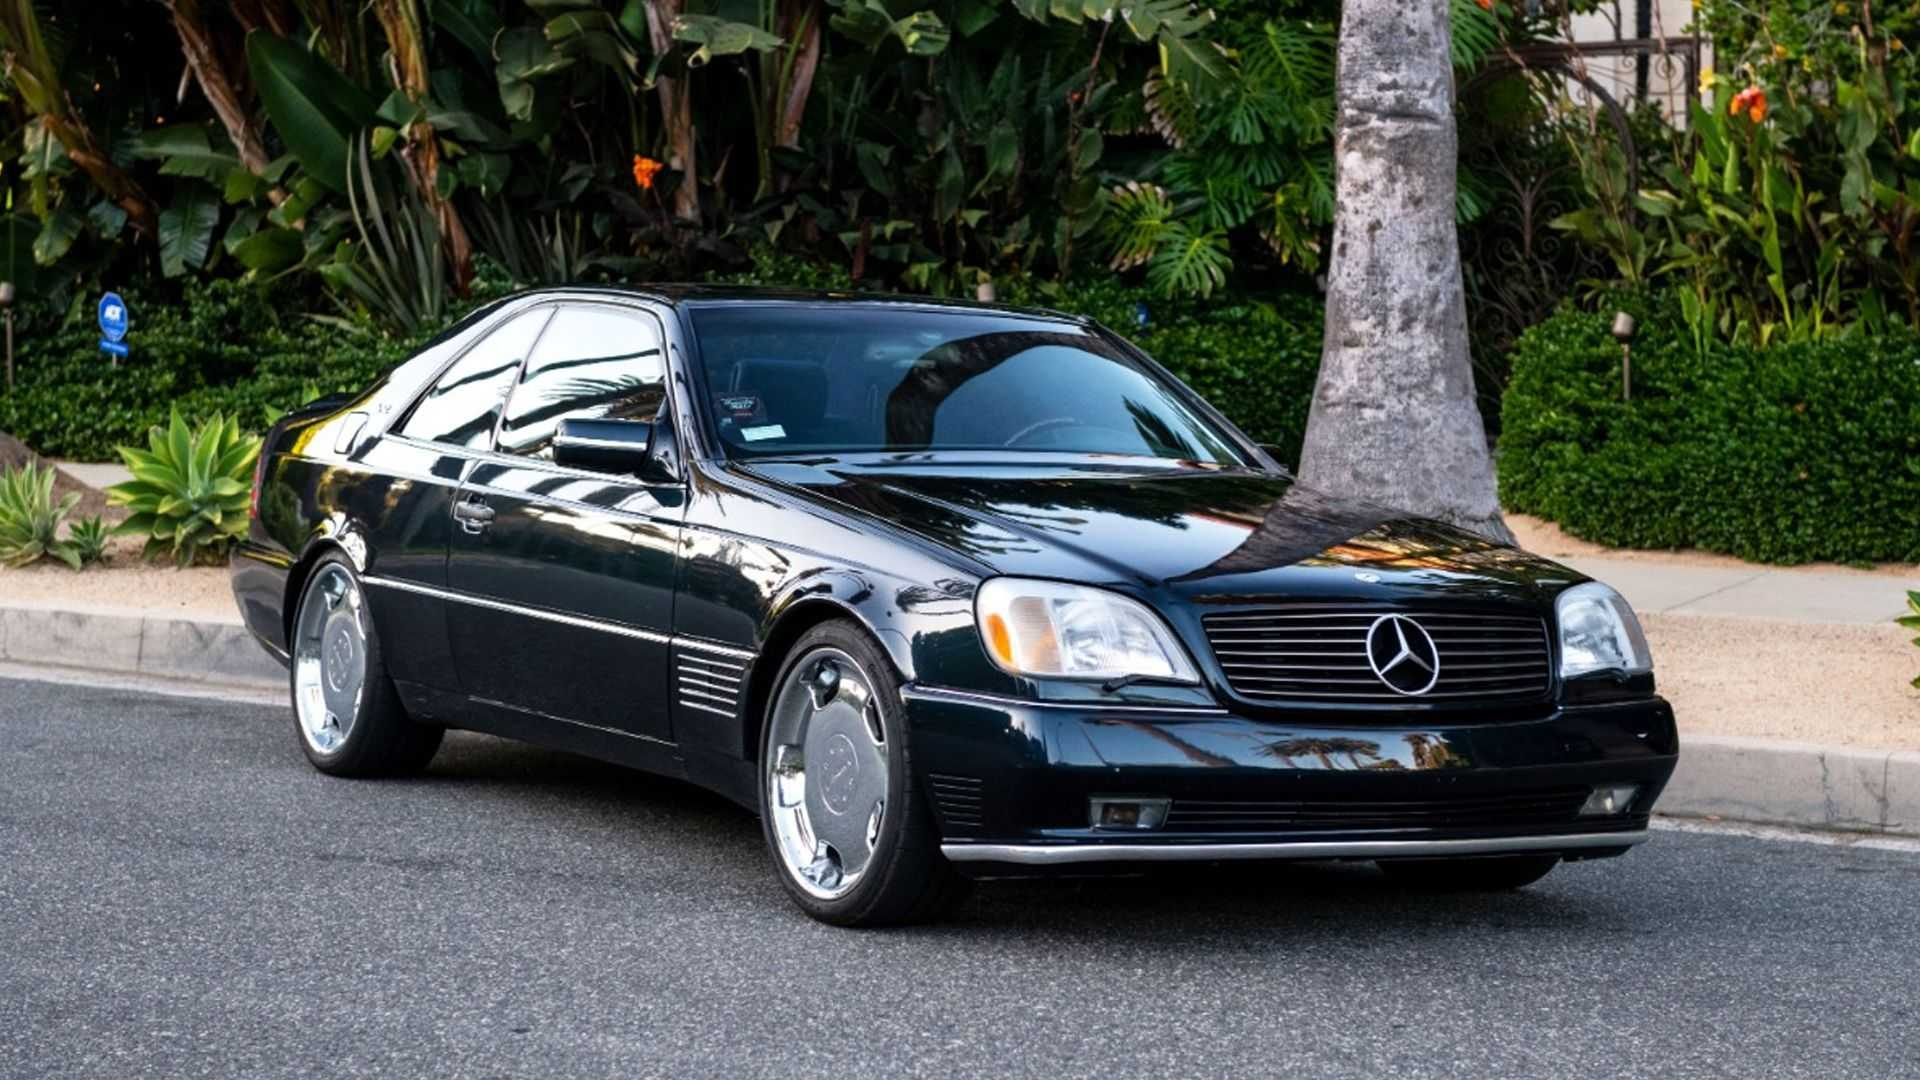 Mercedes-Benz S 600 Michael Jordan